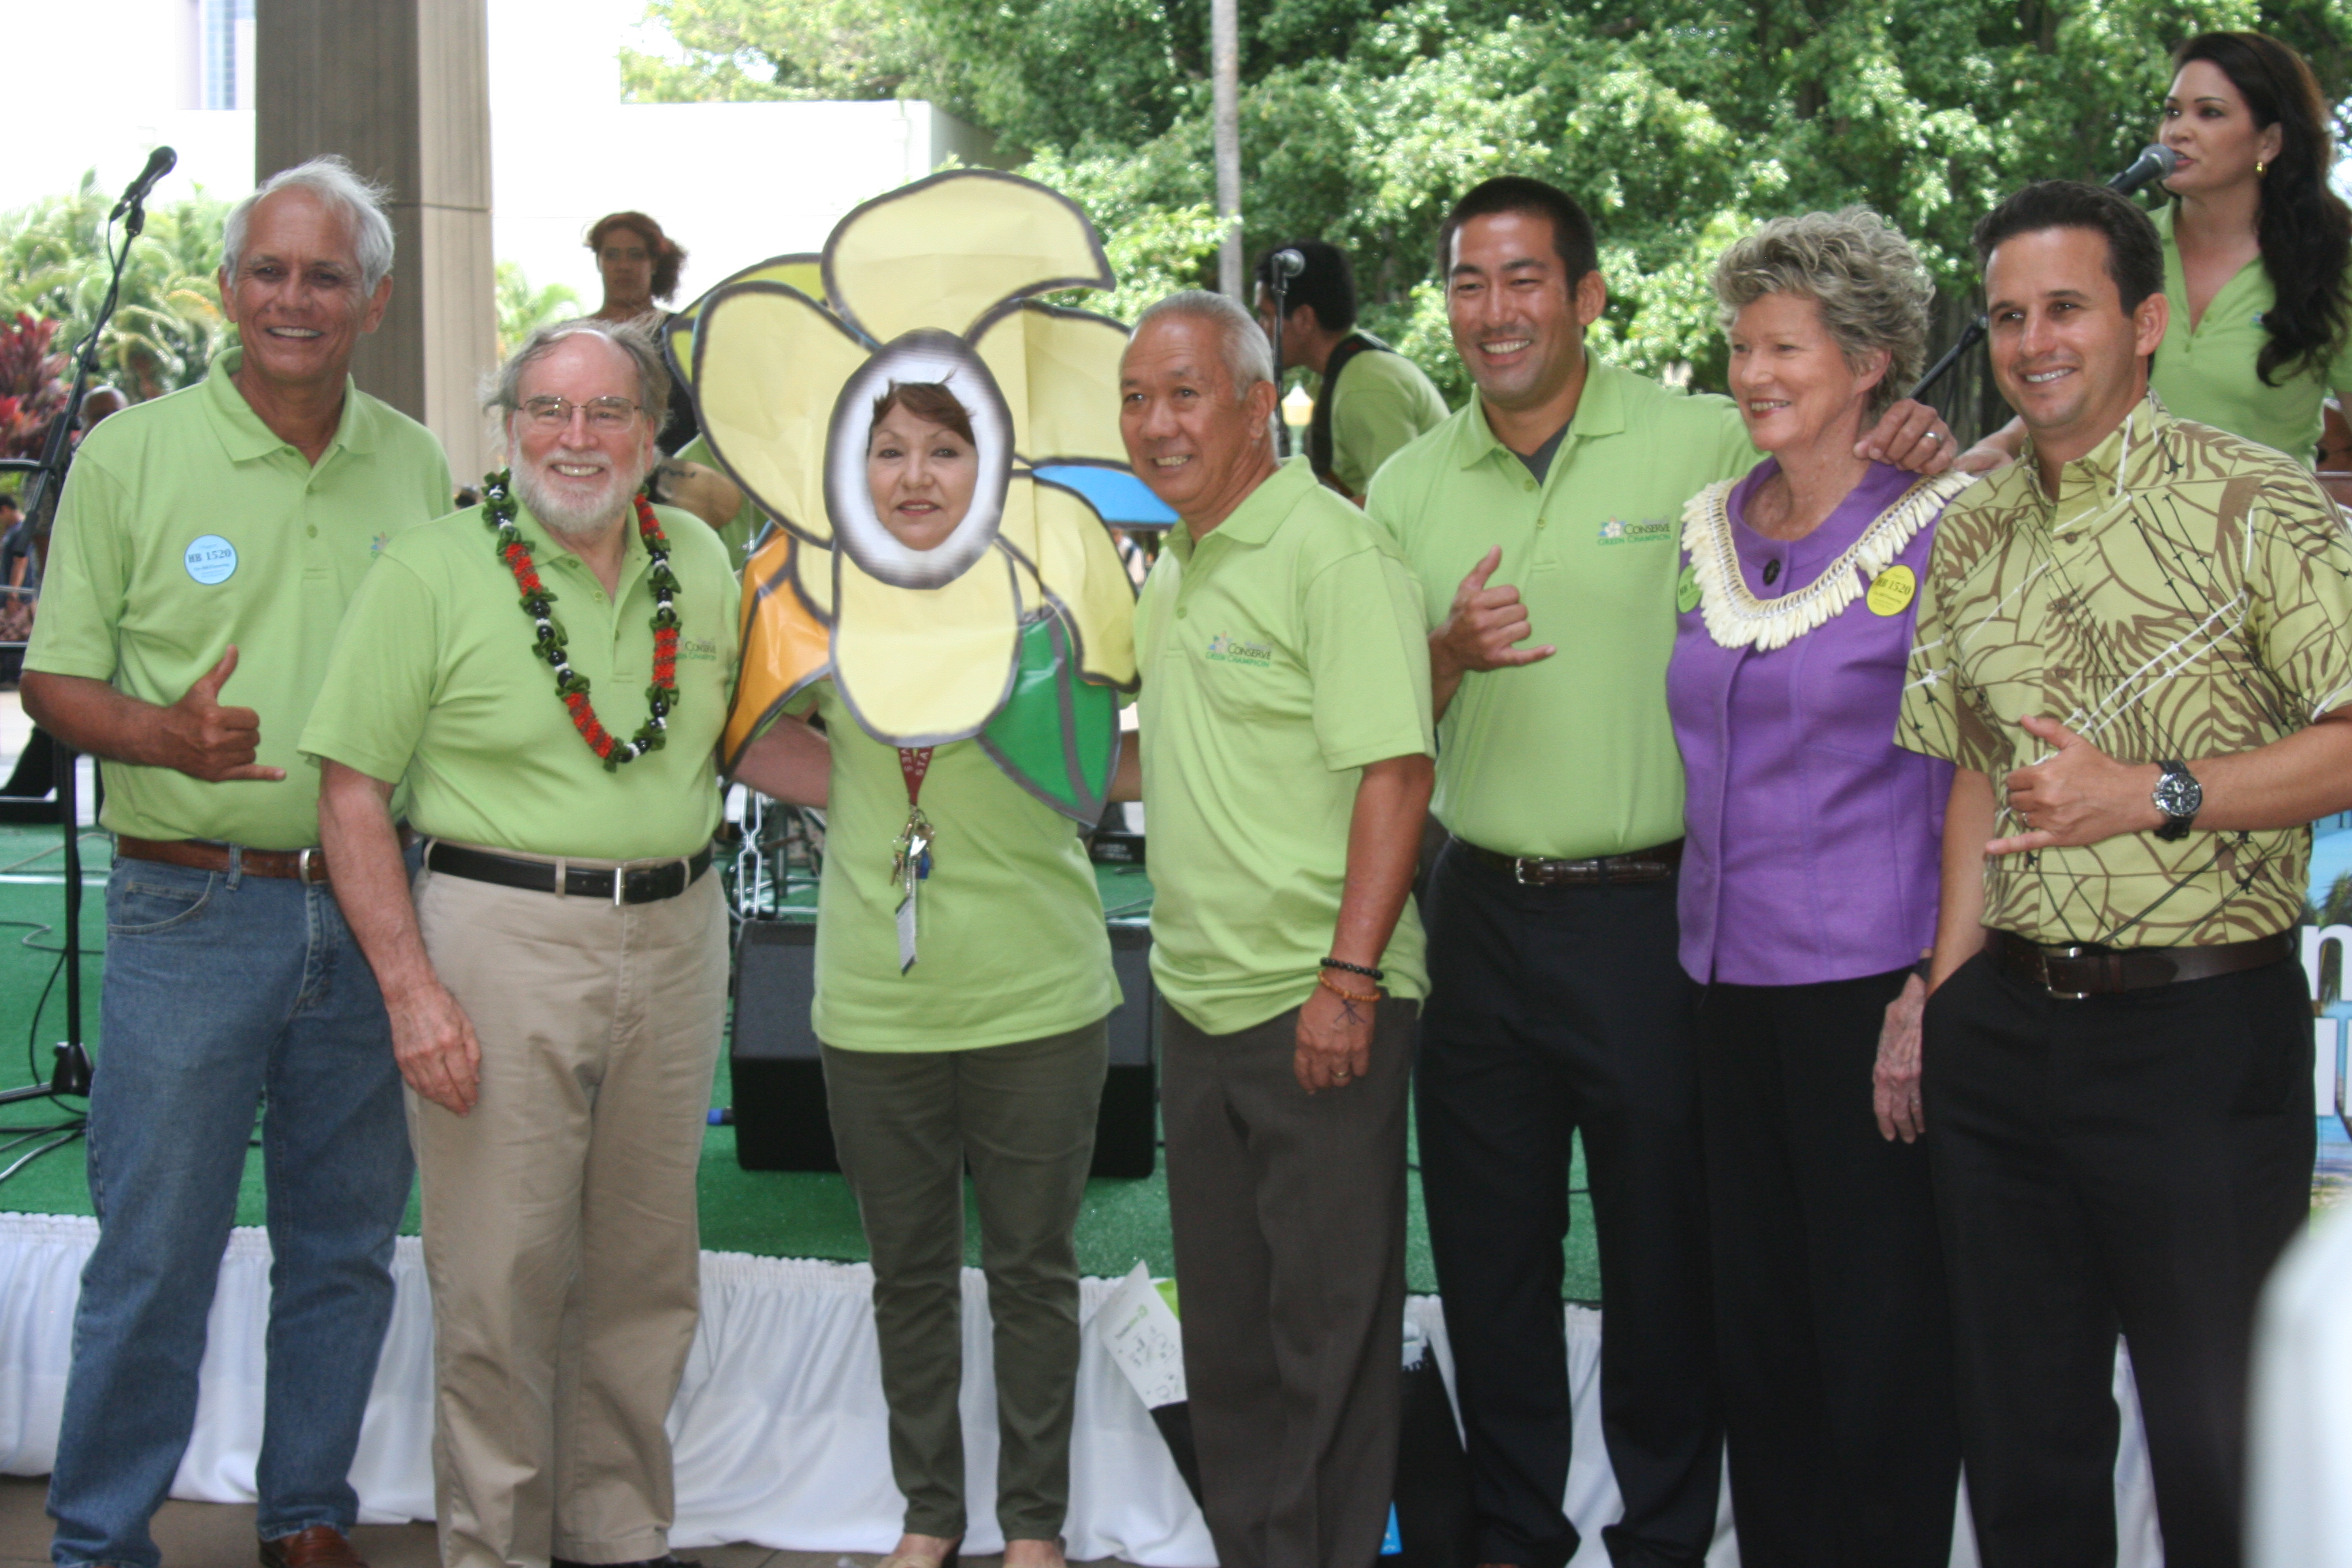 Here's a past picture of Speaker Calvin K.Y. Say (4th from the left) with his colleagues in elected office enjoying a community event at the Hawaii State Capitol.